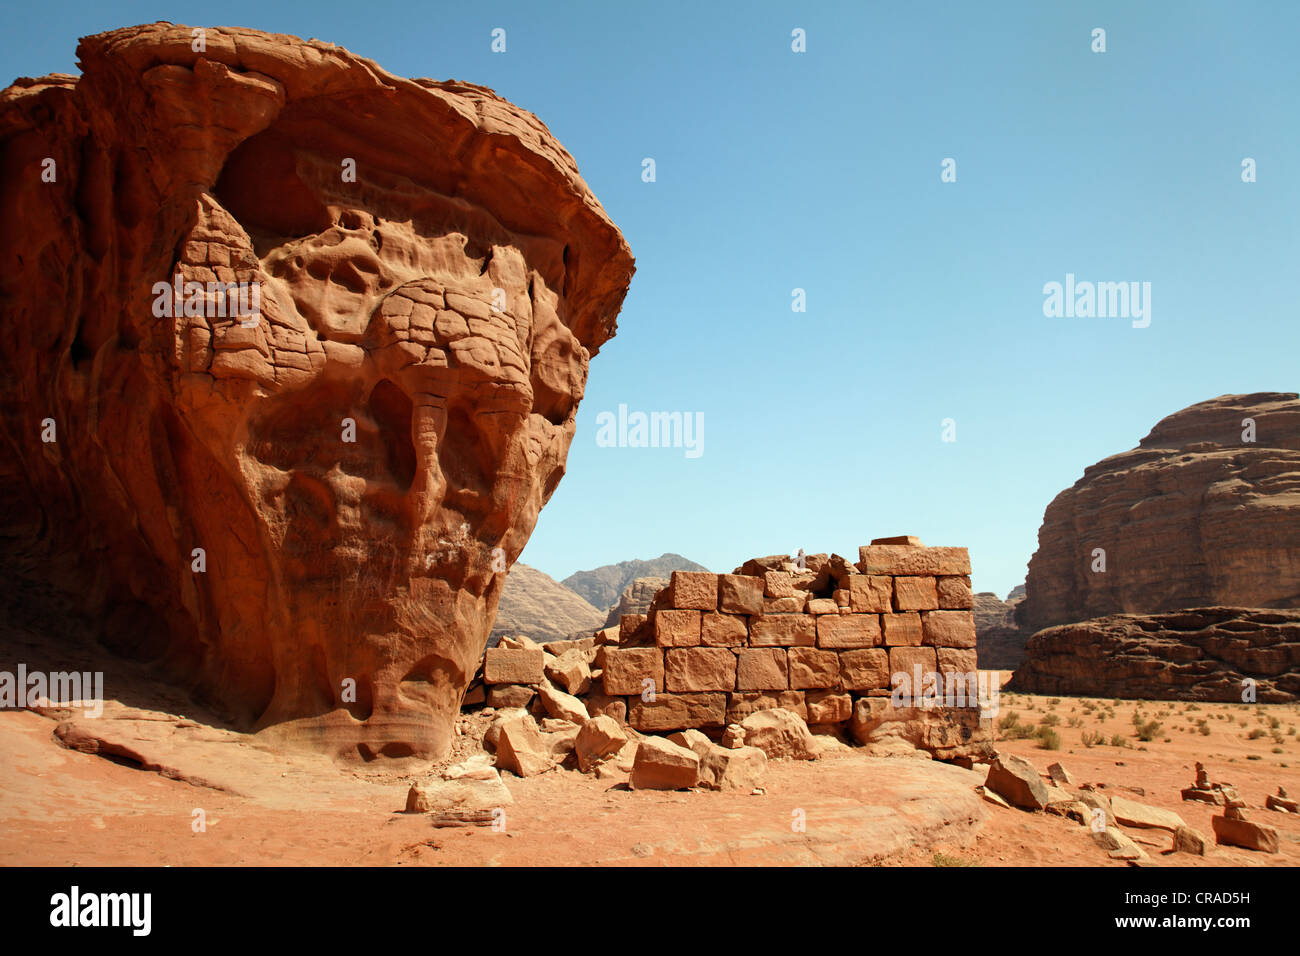 House from Lawrence of Arabia, ruin, wall, desert, Wadi Rum, Hashemite Kingdom of Jordan, Middle East, Asia - Stock Image